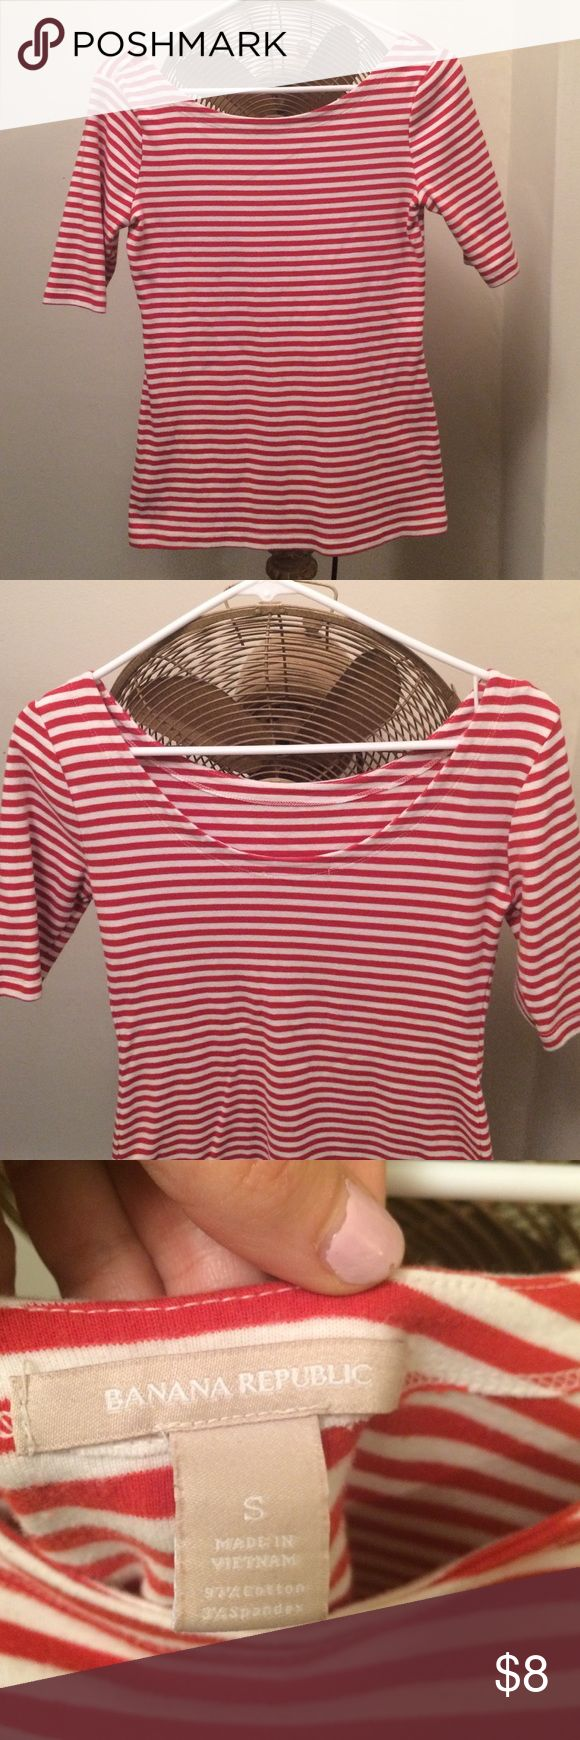 Banana Republic red & white striped shirt small Banana Republic red and white striped fitted tshirt, size small. Scoop neck and scoop back (a little lower than the front). Banana Republic Tops Blouses